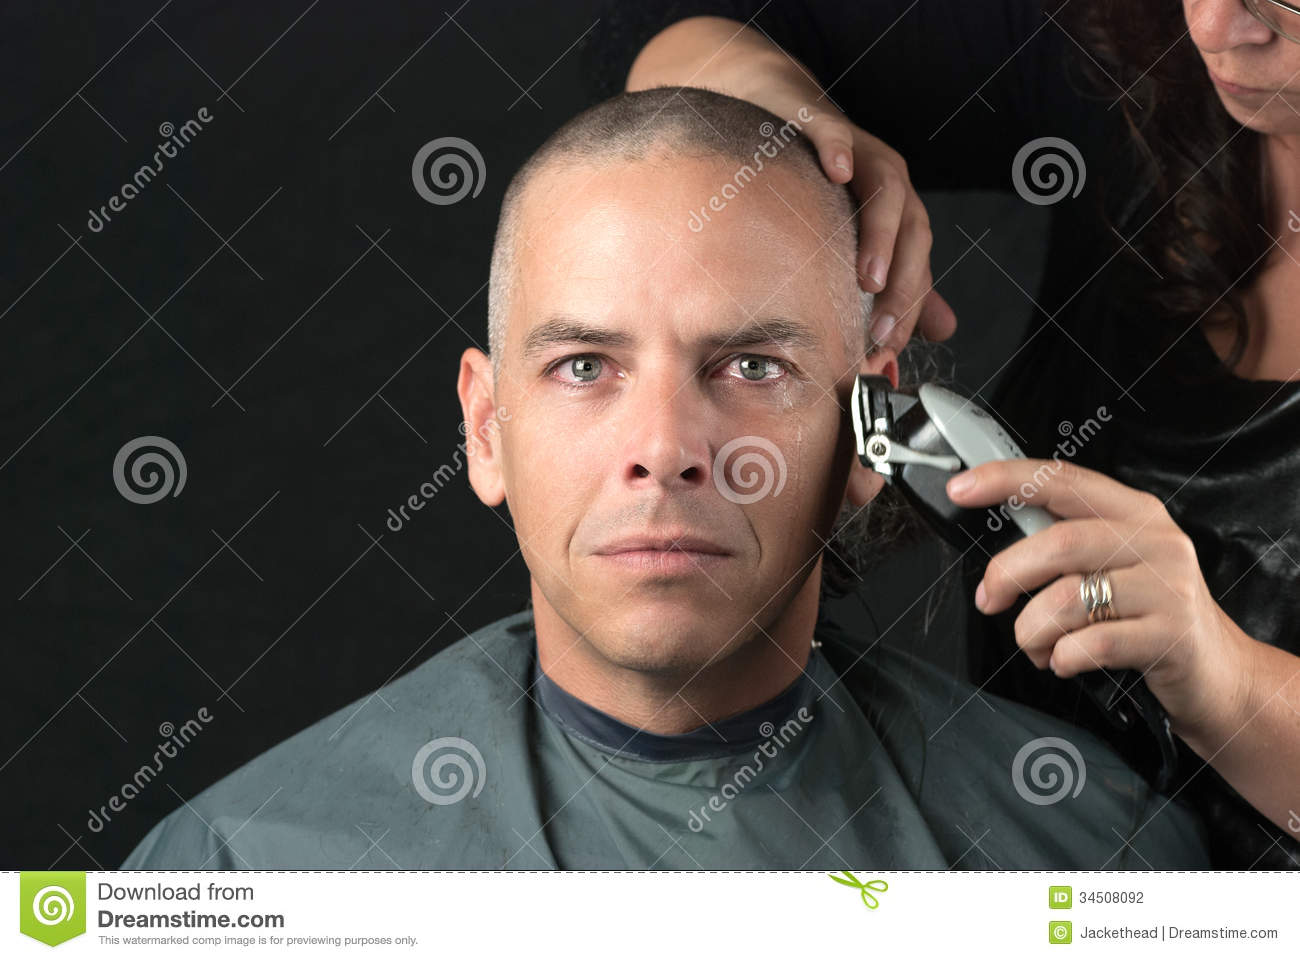 Picture of man getting his head shaved